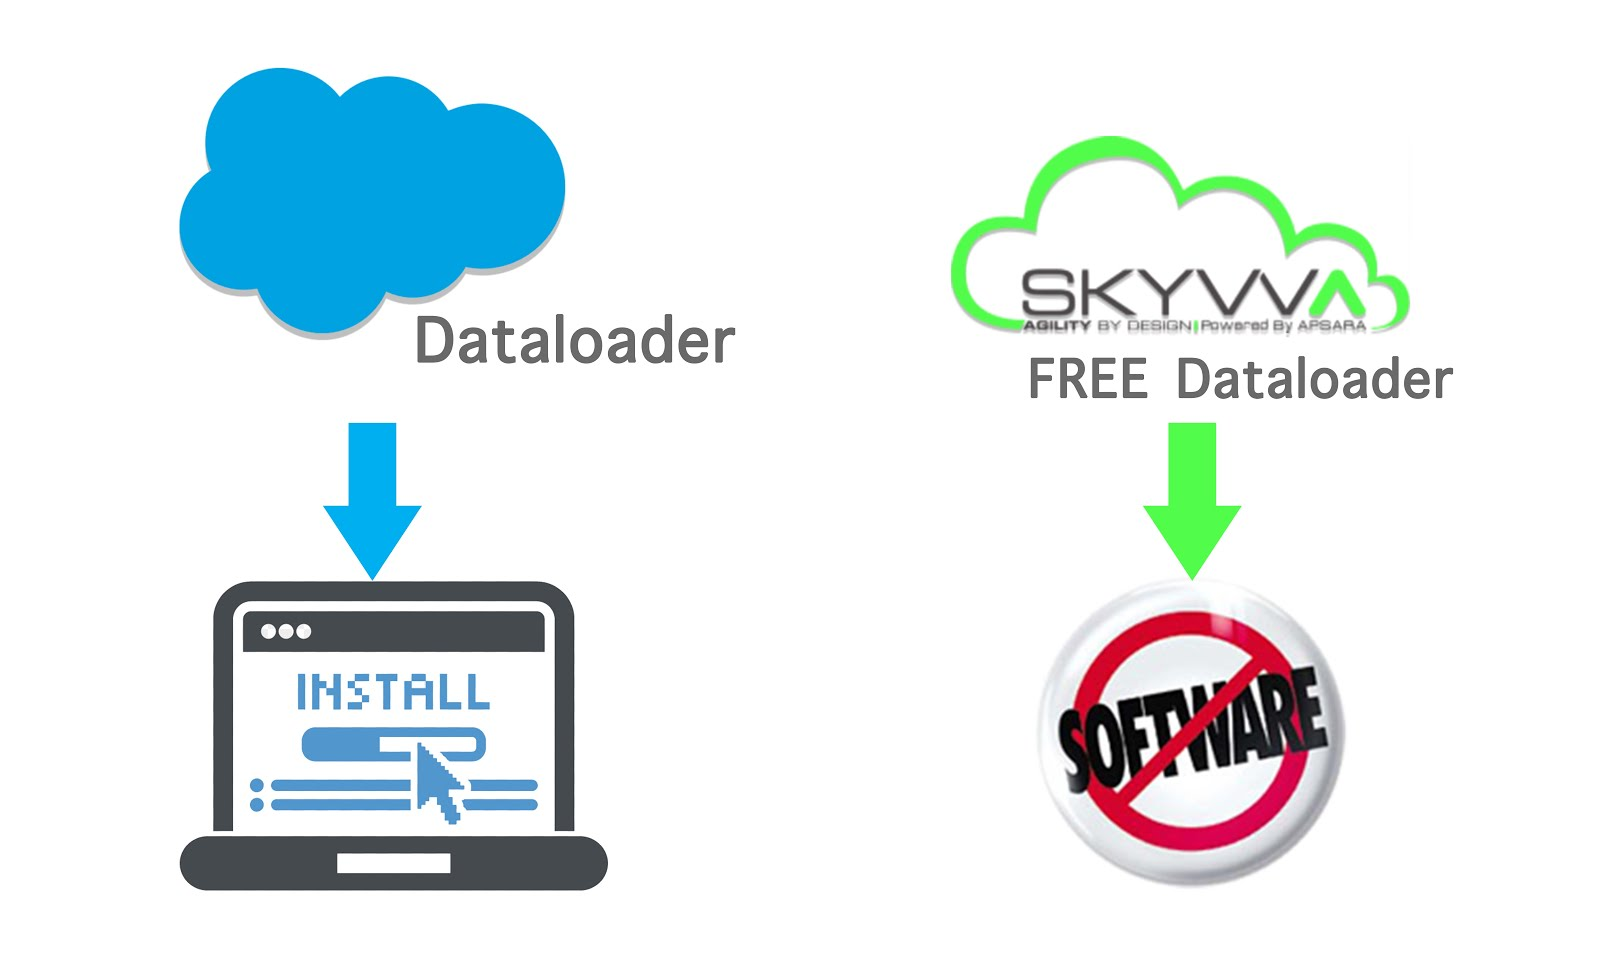 installation SKYVVA Data Loader